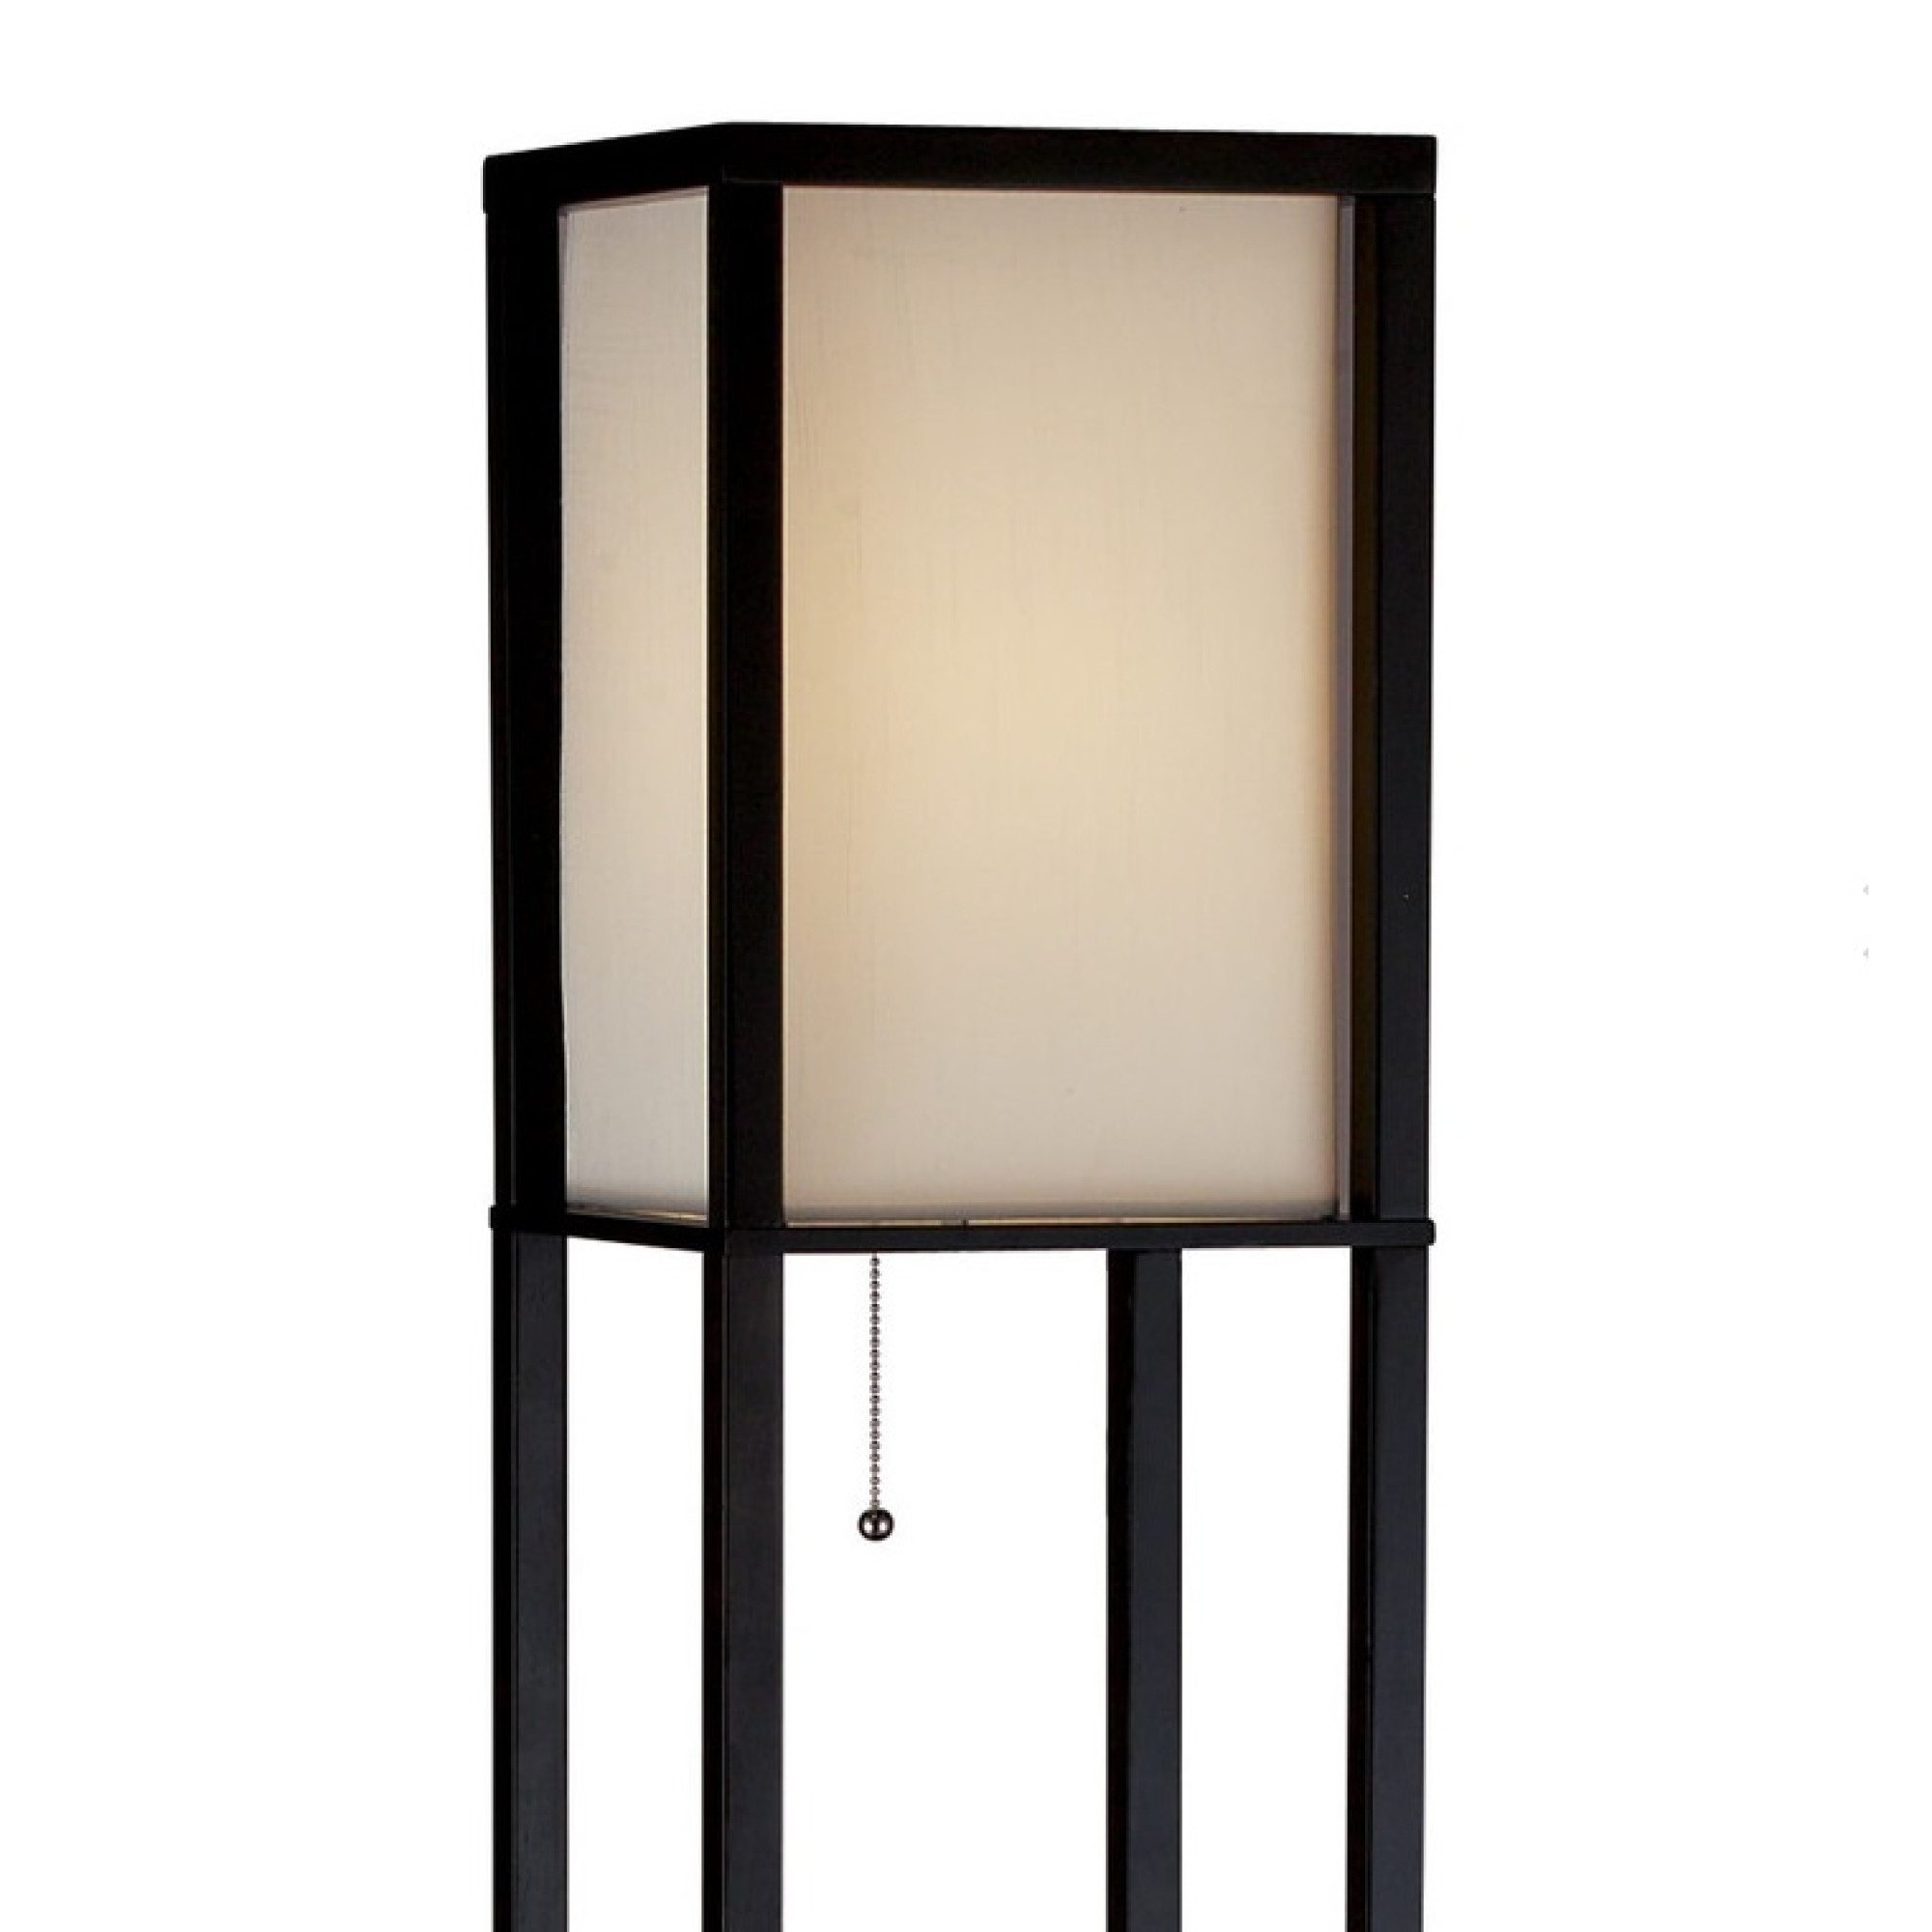 Adesso wright tall floor lamp 3138 22 furniture home dcor adesso wright tall floor lamp 3138 22 furniture home dcor fortytwo mozeypictures Images